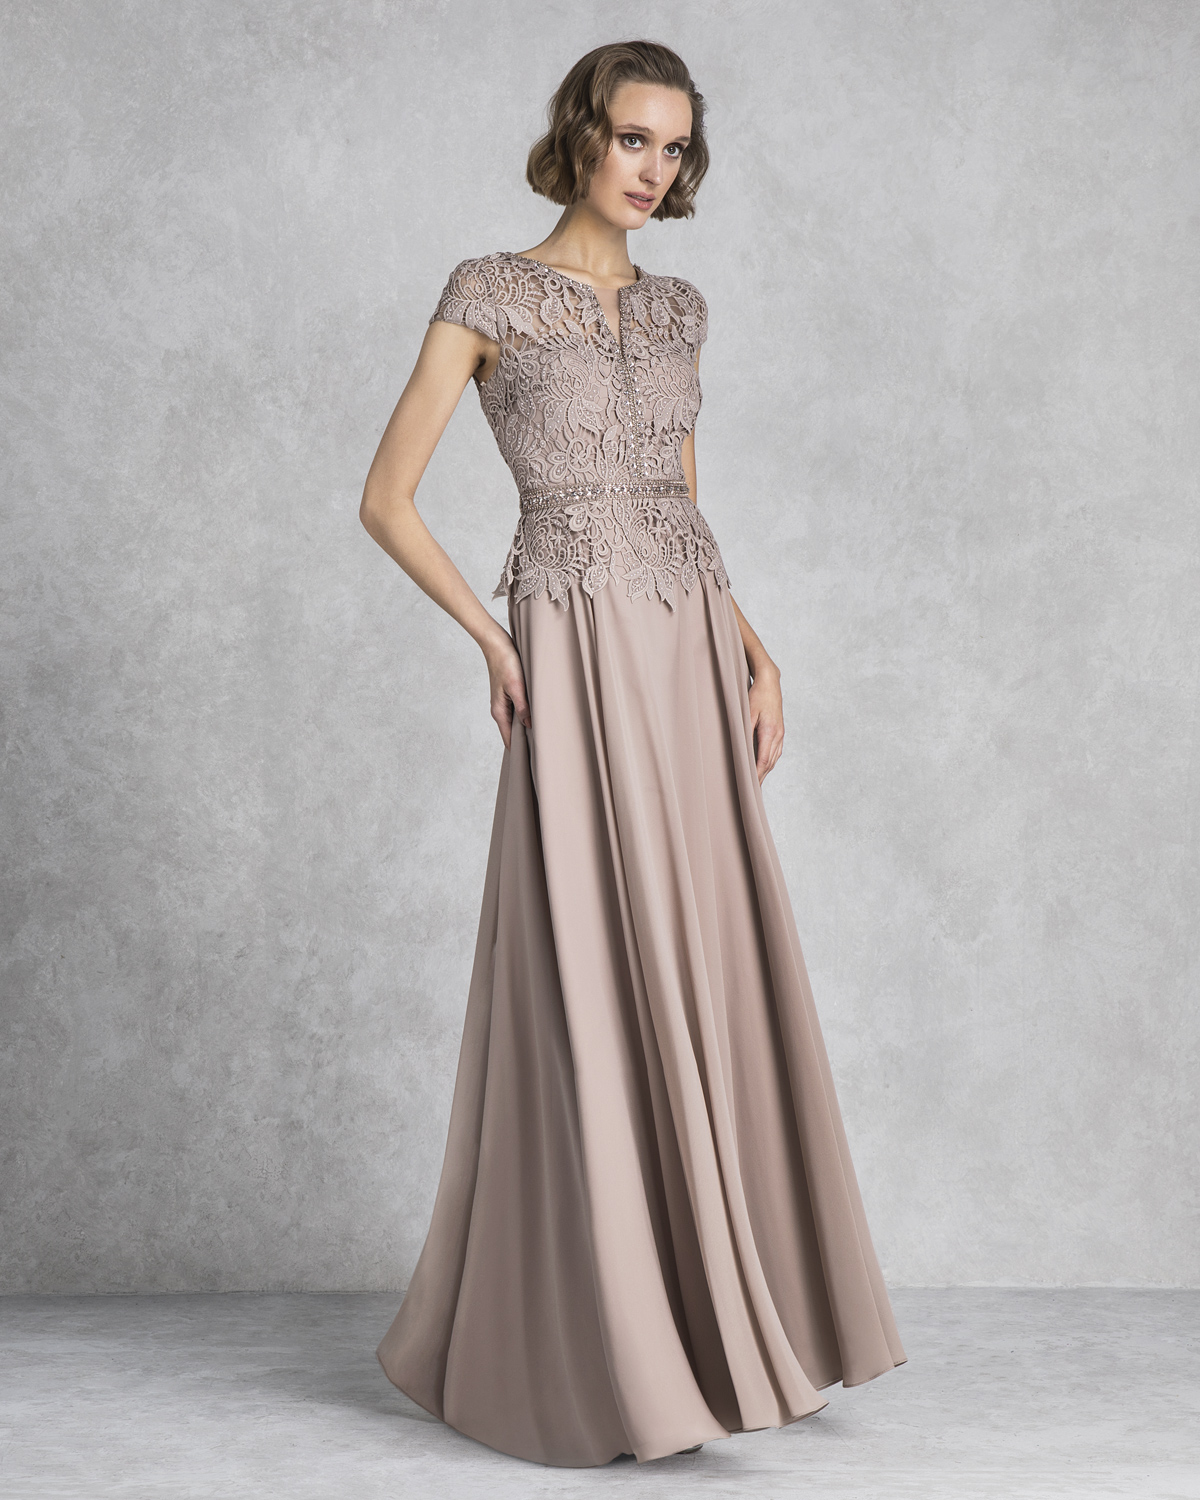 Classic Dresses / Long evening dress for the mother of the bride with lace top and satin skirt